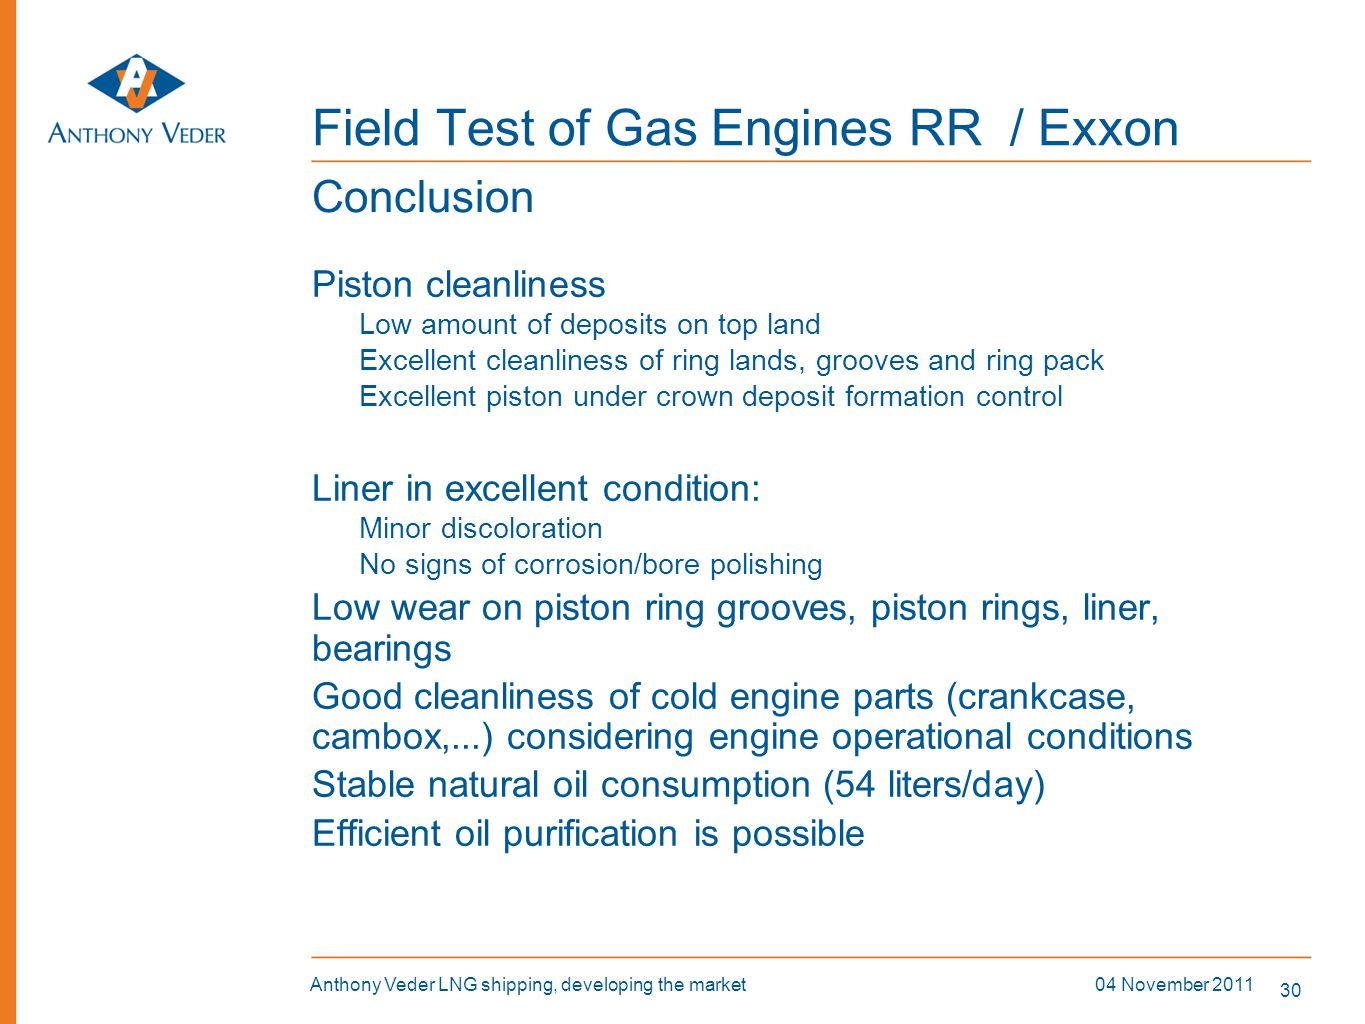 30 04 November 2011Anthony Veder LNG shipping, developing the market Field Test of Gas Engines RR / Exxon Piston cleanliness Low amount of deposits on